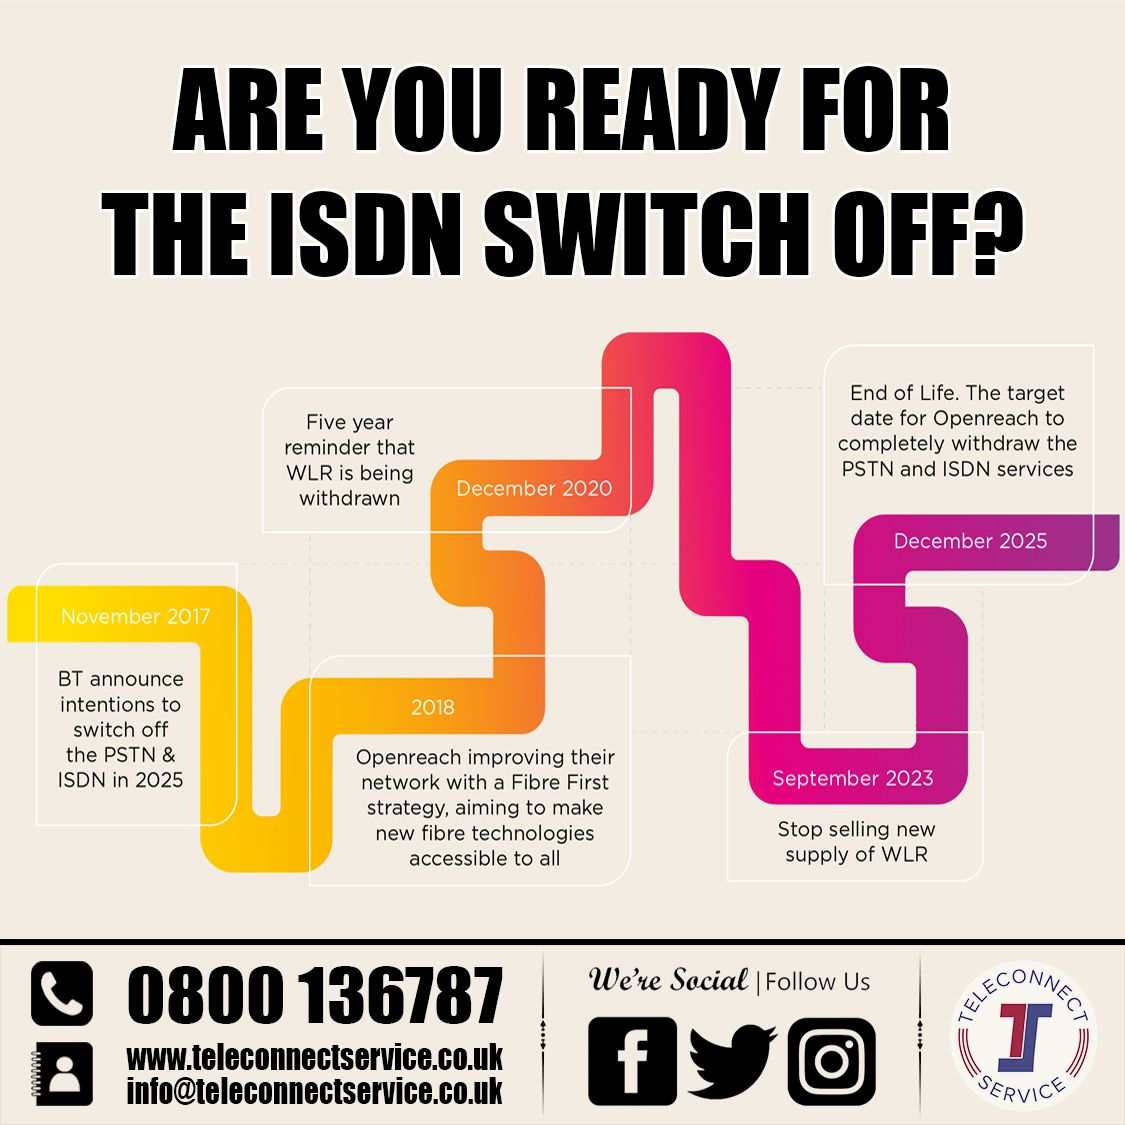 IS YOUR BUSINESS PREPARED FOR THE SWITCH OFF